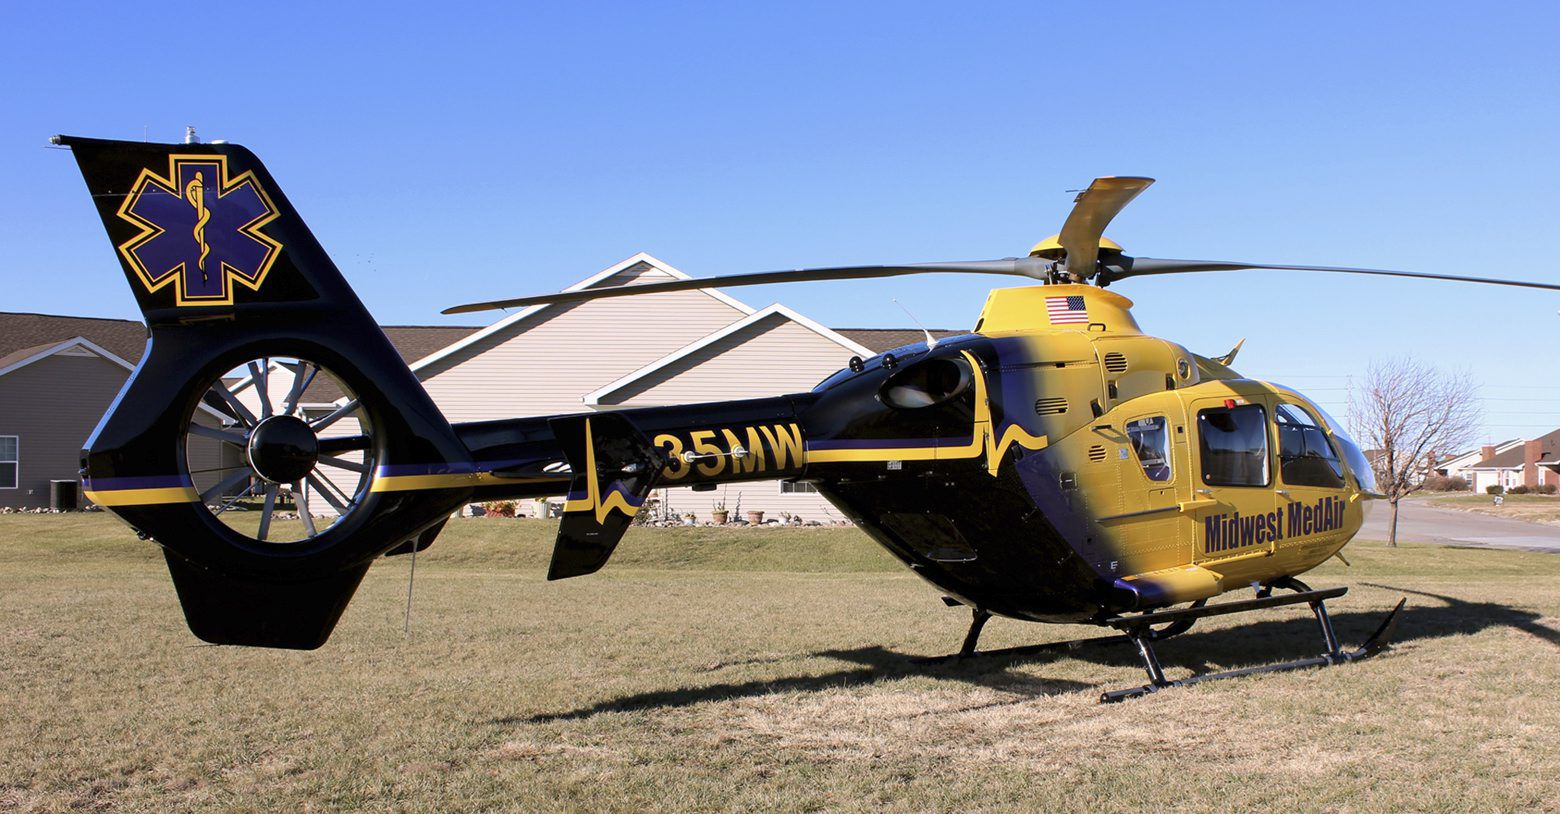 Copter 1 On the ground and in